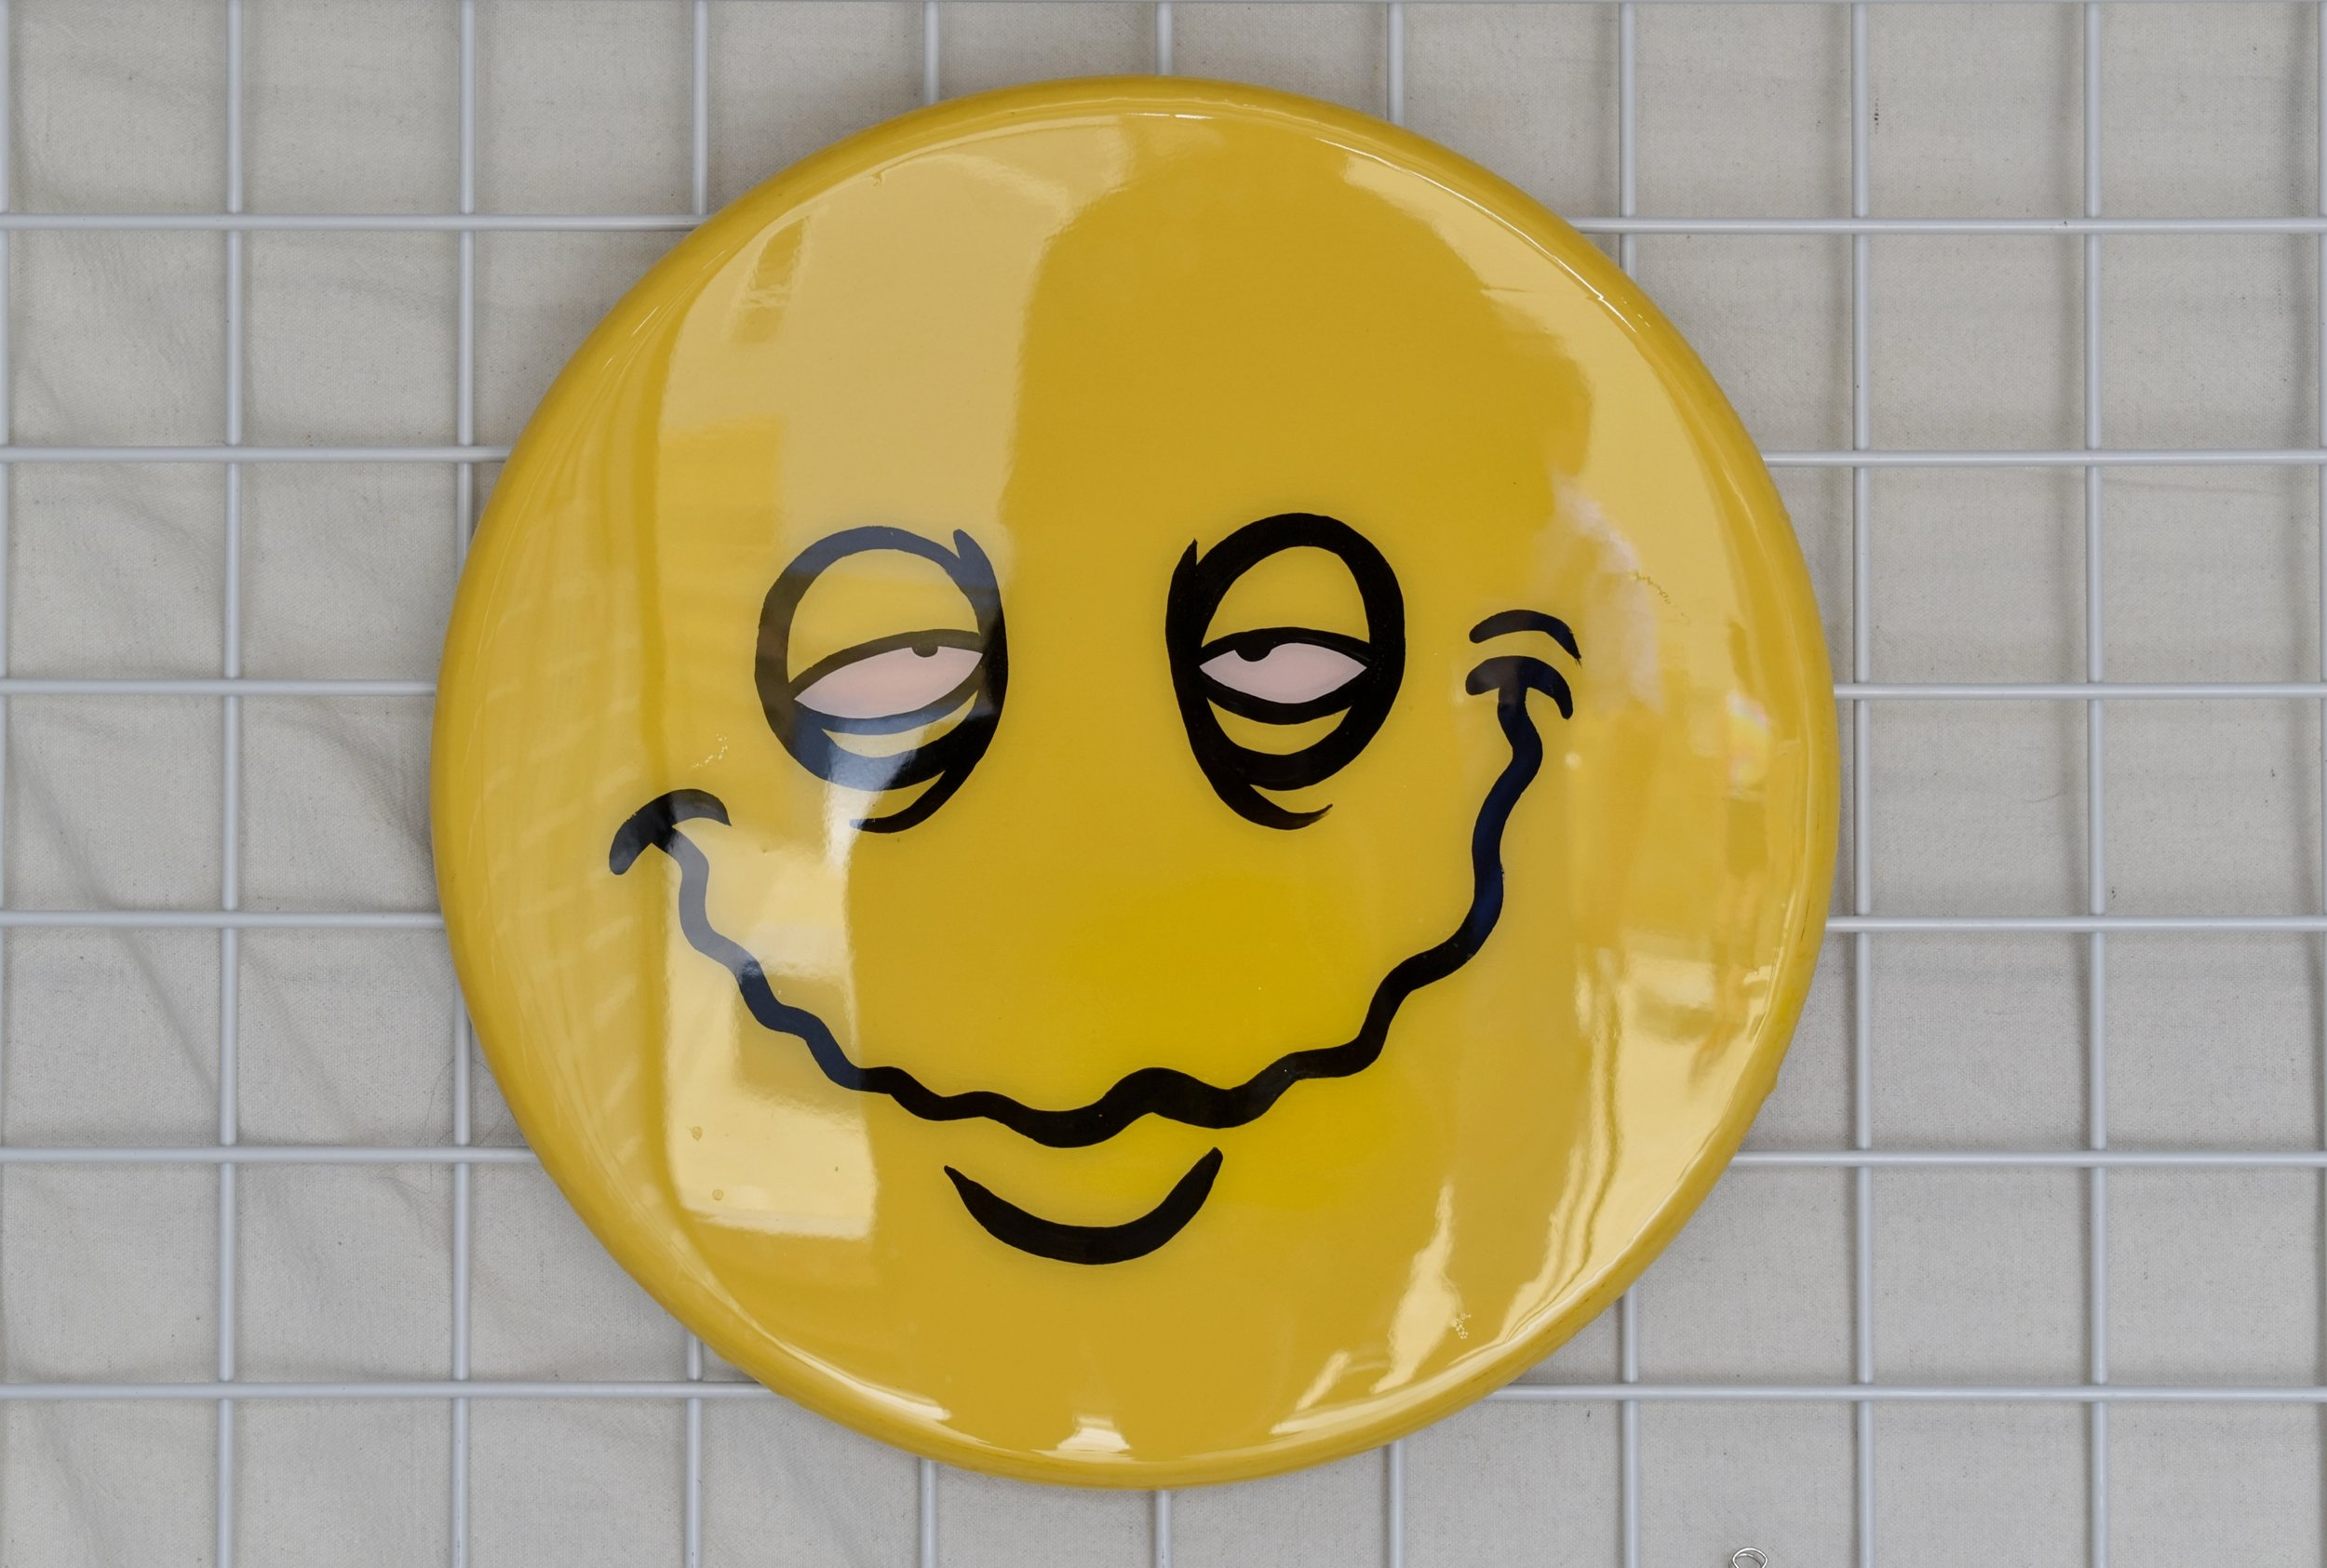 "dante lombardi - Smiley FaceAcrylic, Spray paint, & Resin on Wood18""x18"" $100Instagram"